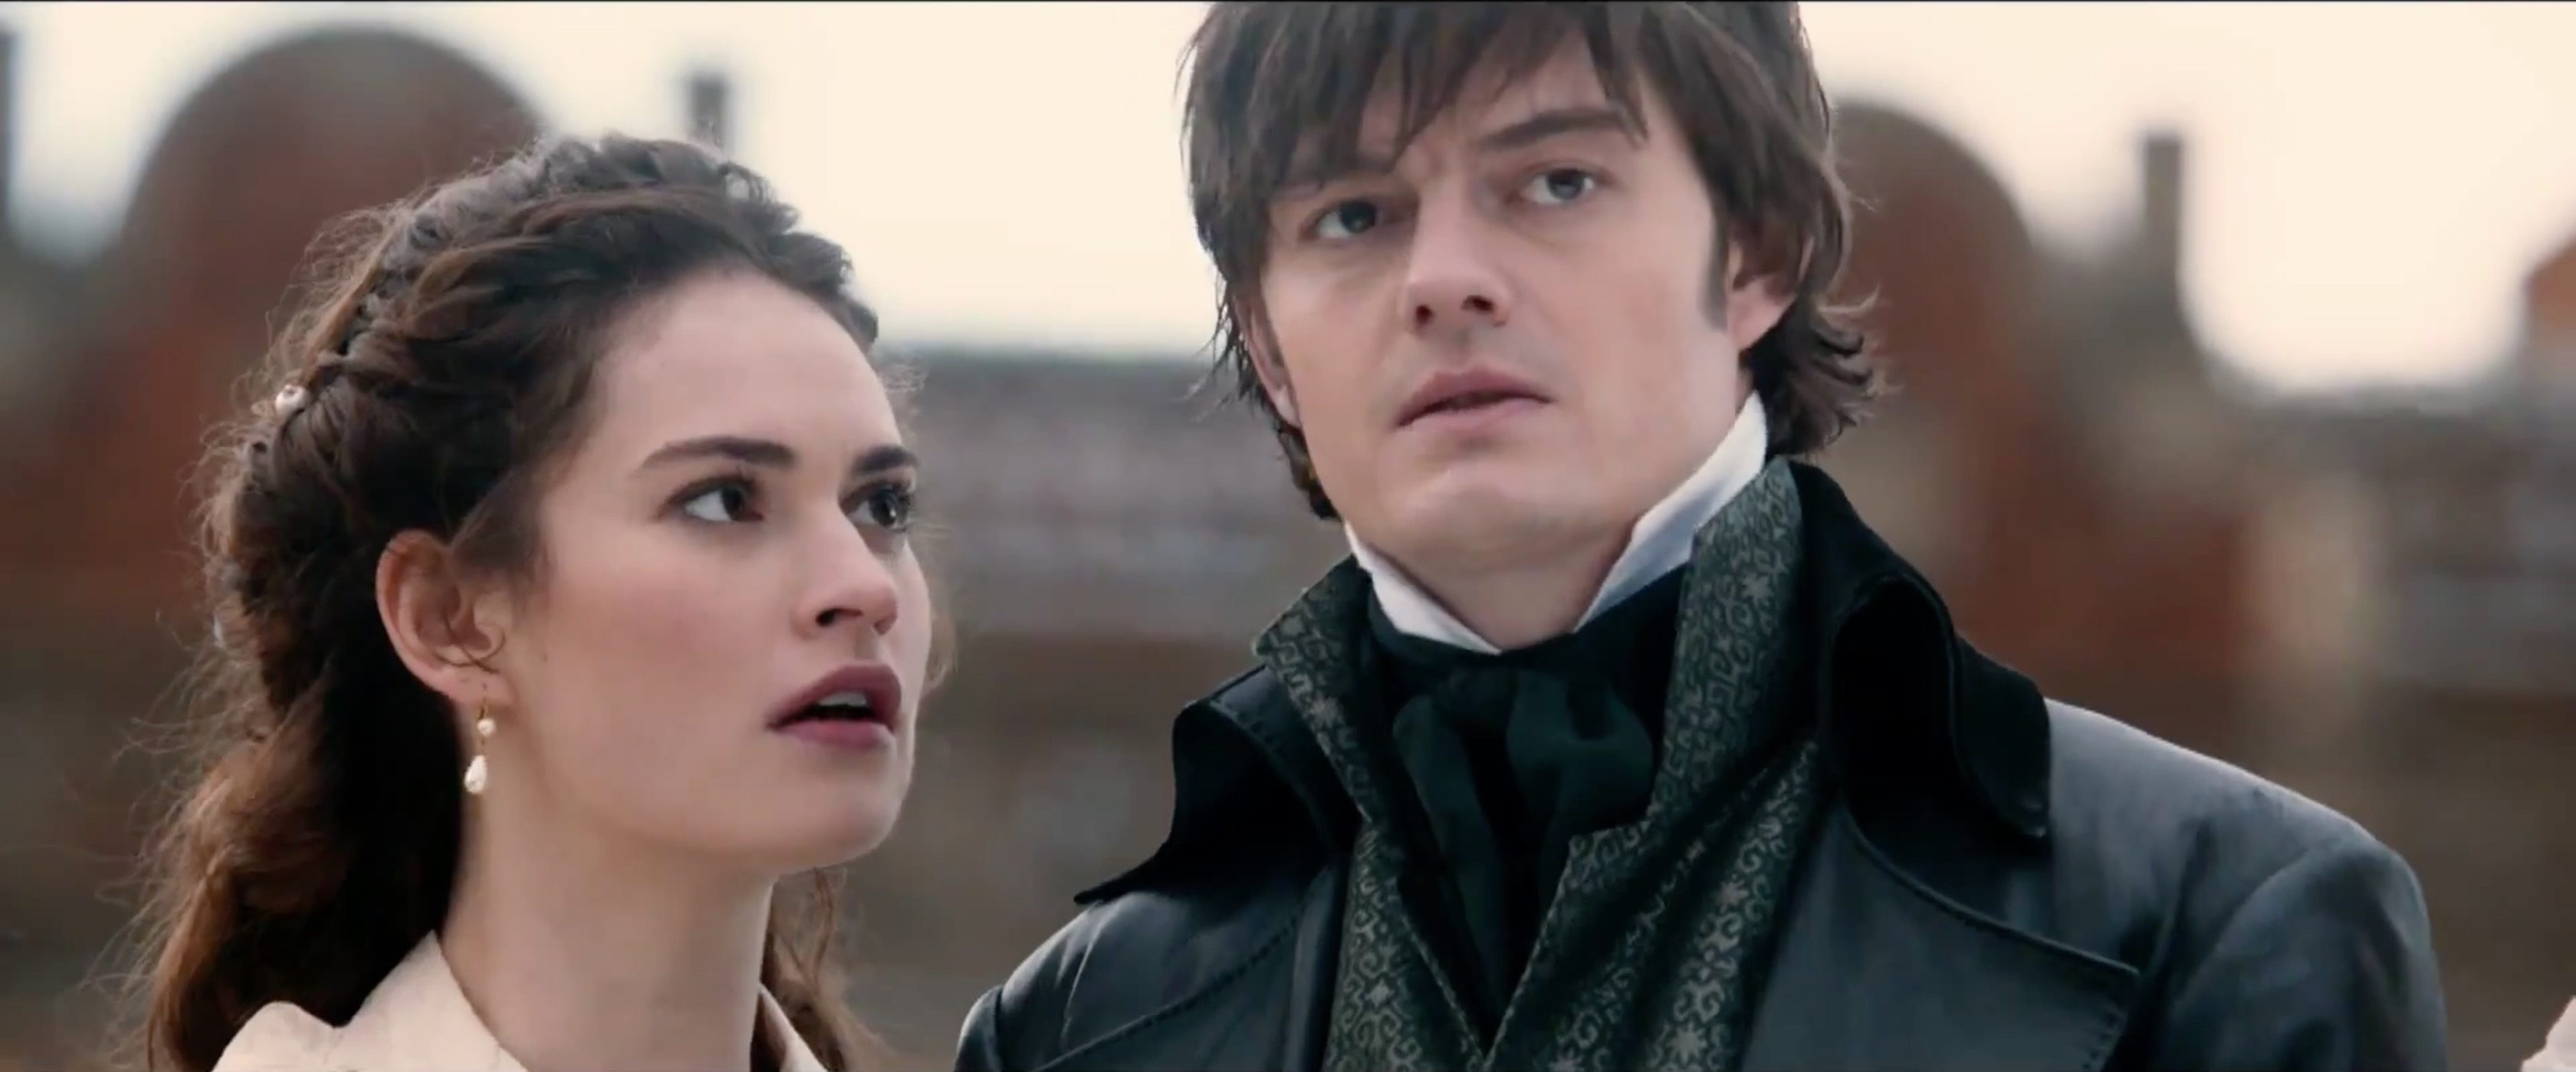 Pride and Prejudice and Zombies Official Trailer #2